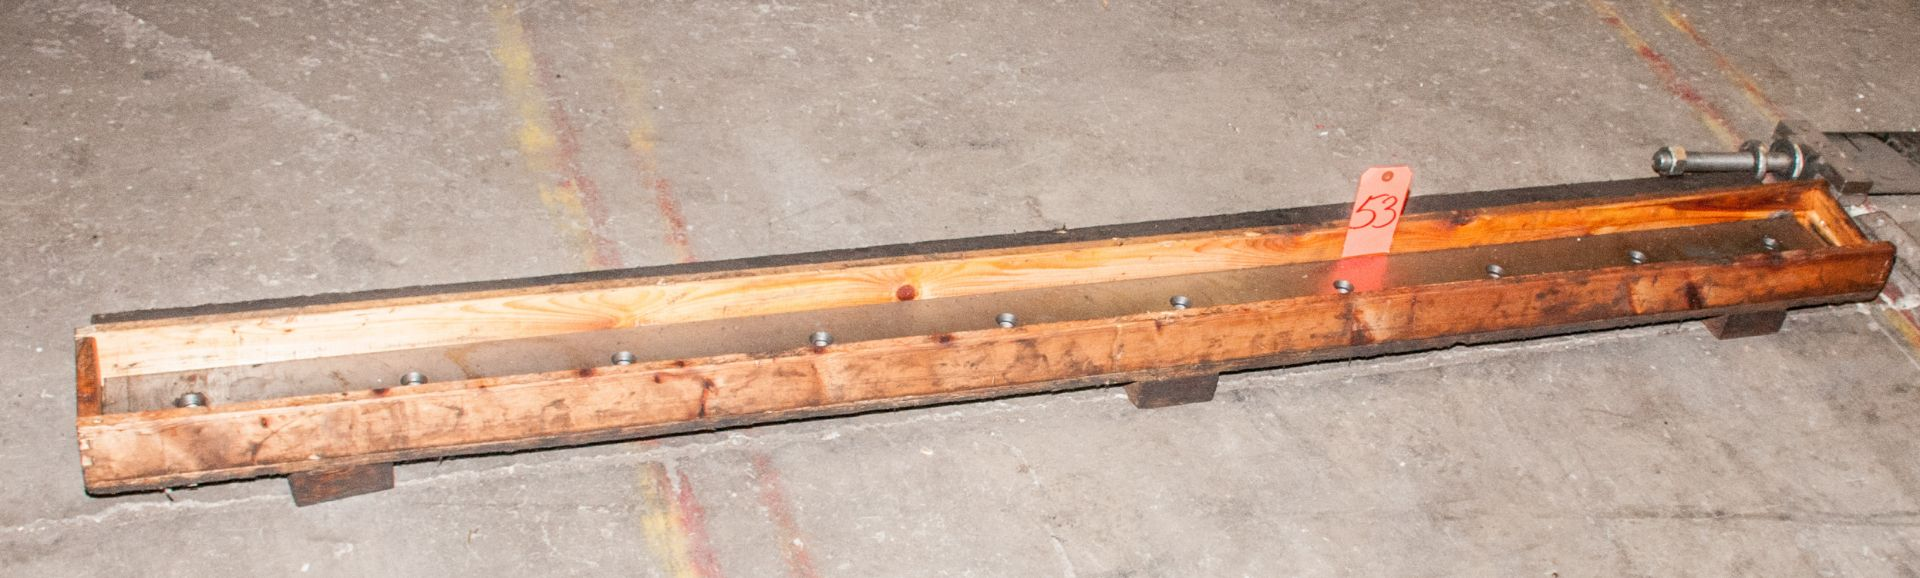 Extra Shear Blades (used) and Seperator guides for Lot 52